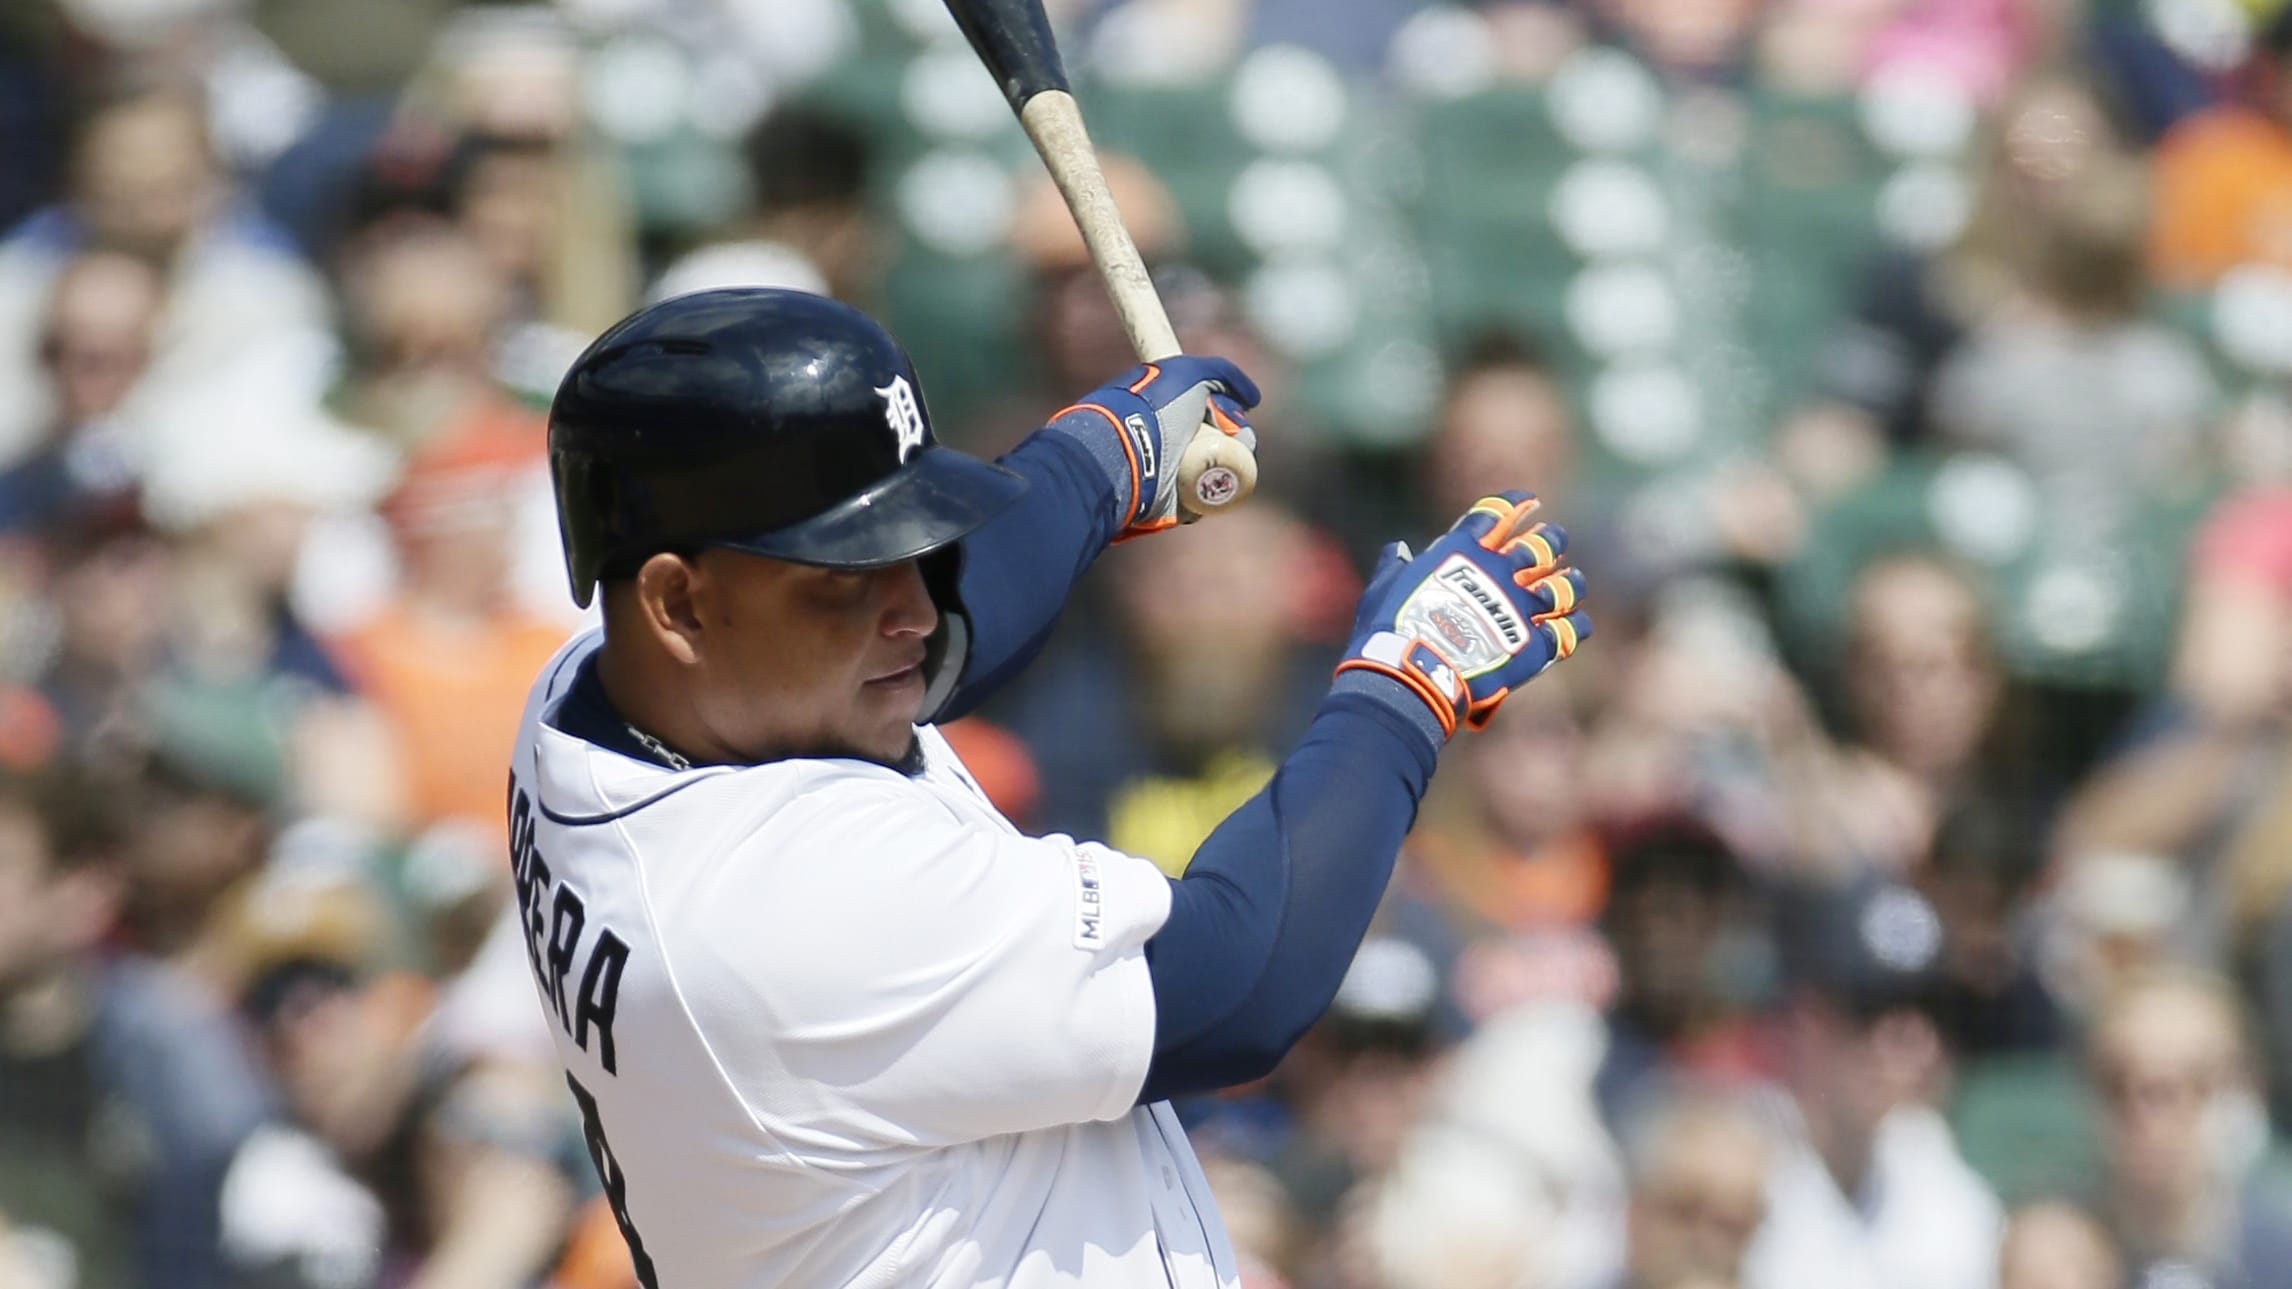 DETROIT, MI - APRIL 6:  Miguel Cabrera #24 of the Detroit Tigers singles to drive in Nicholas Castellanos against the Kansas City Royals during the fifth inning at Comerica Park on April 6, 2019 in Detroit, Michigan. (Photo by Duane Burleson/Getty Images)